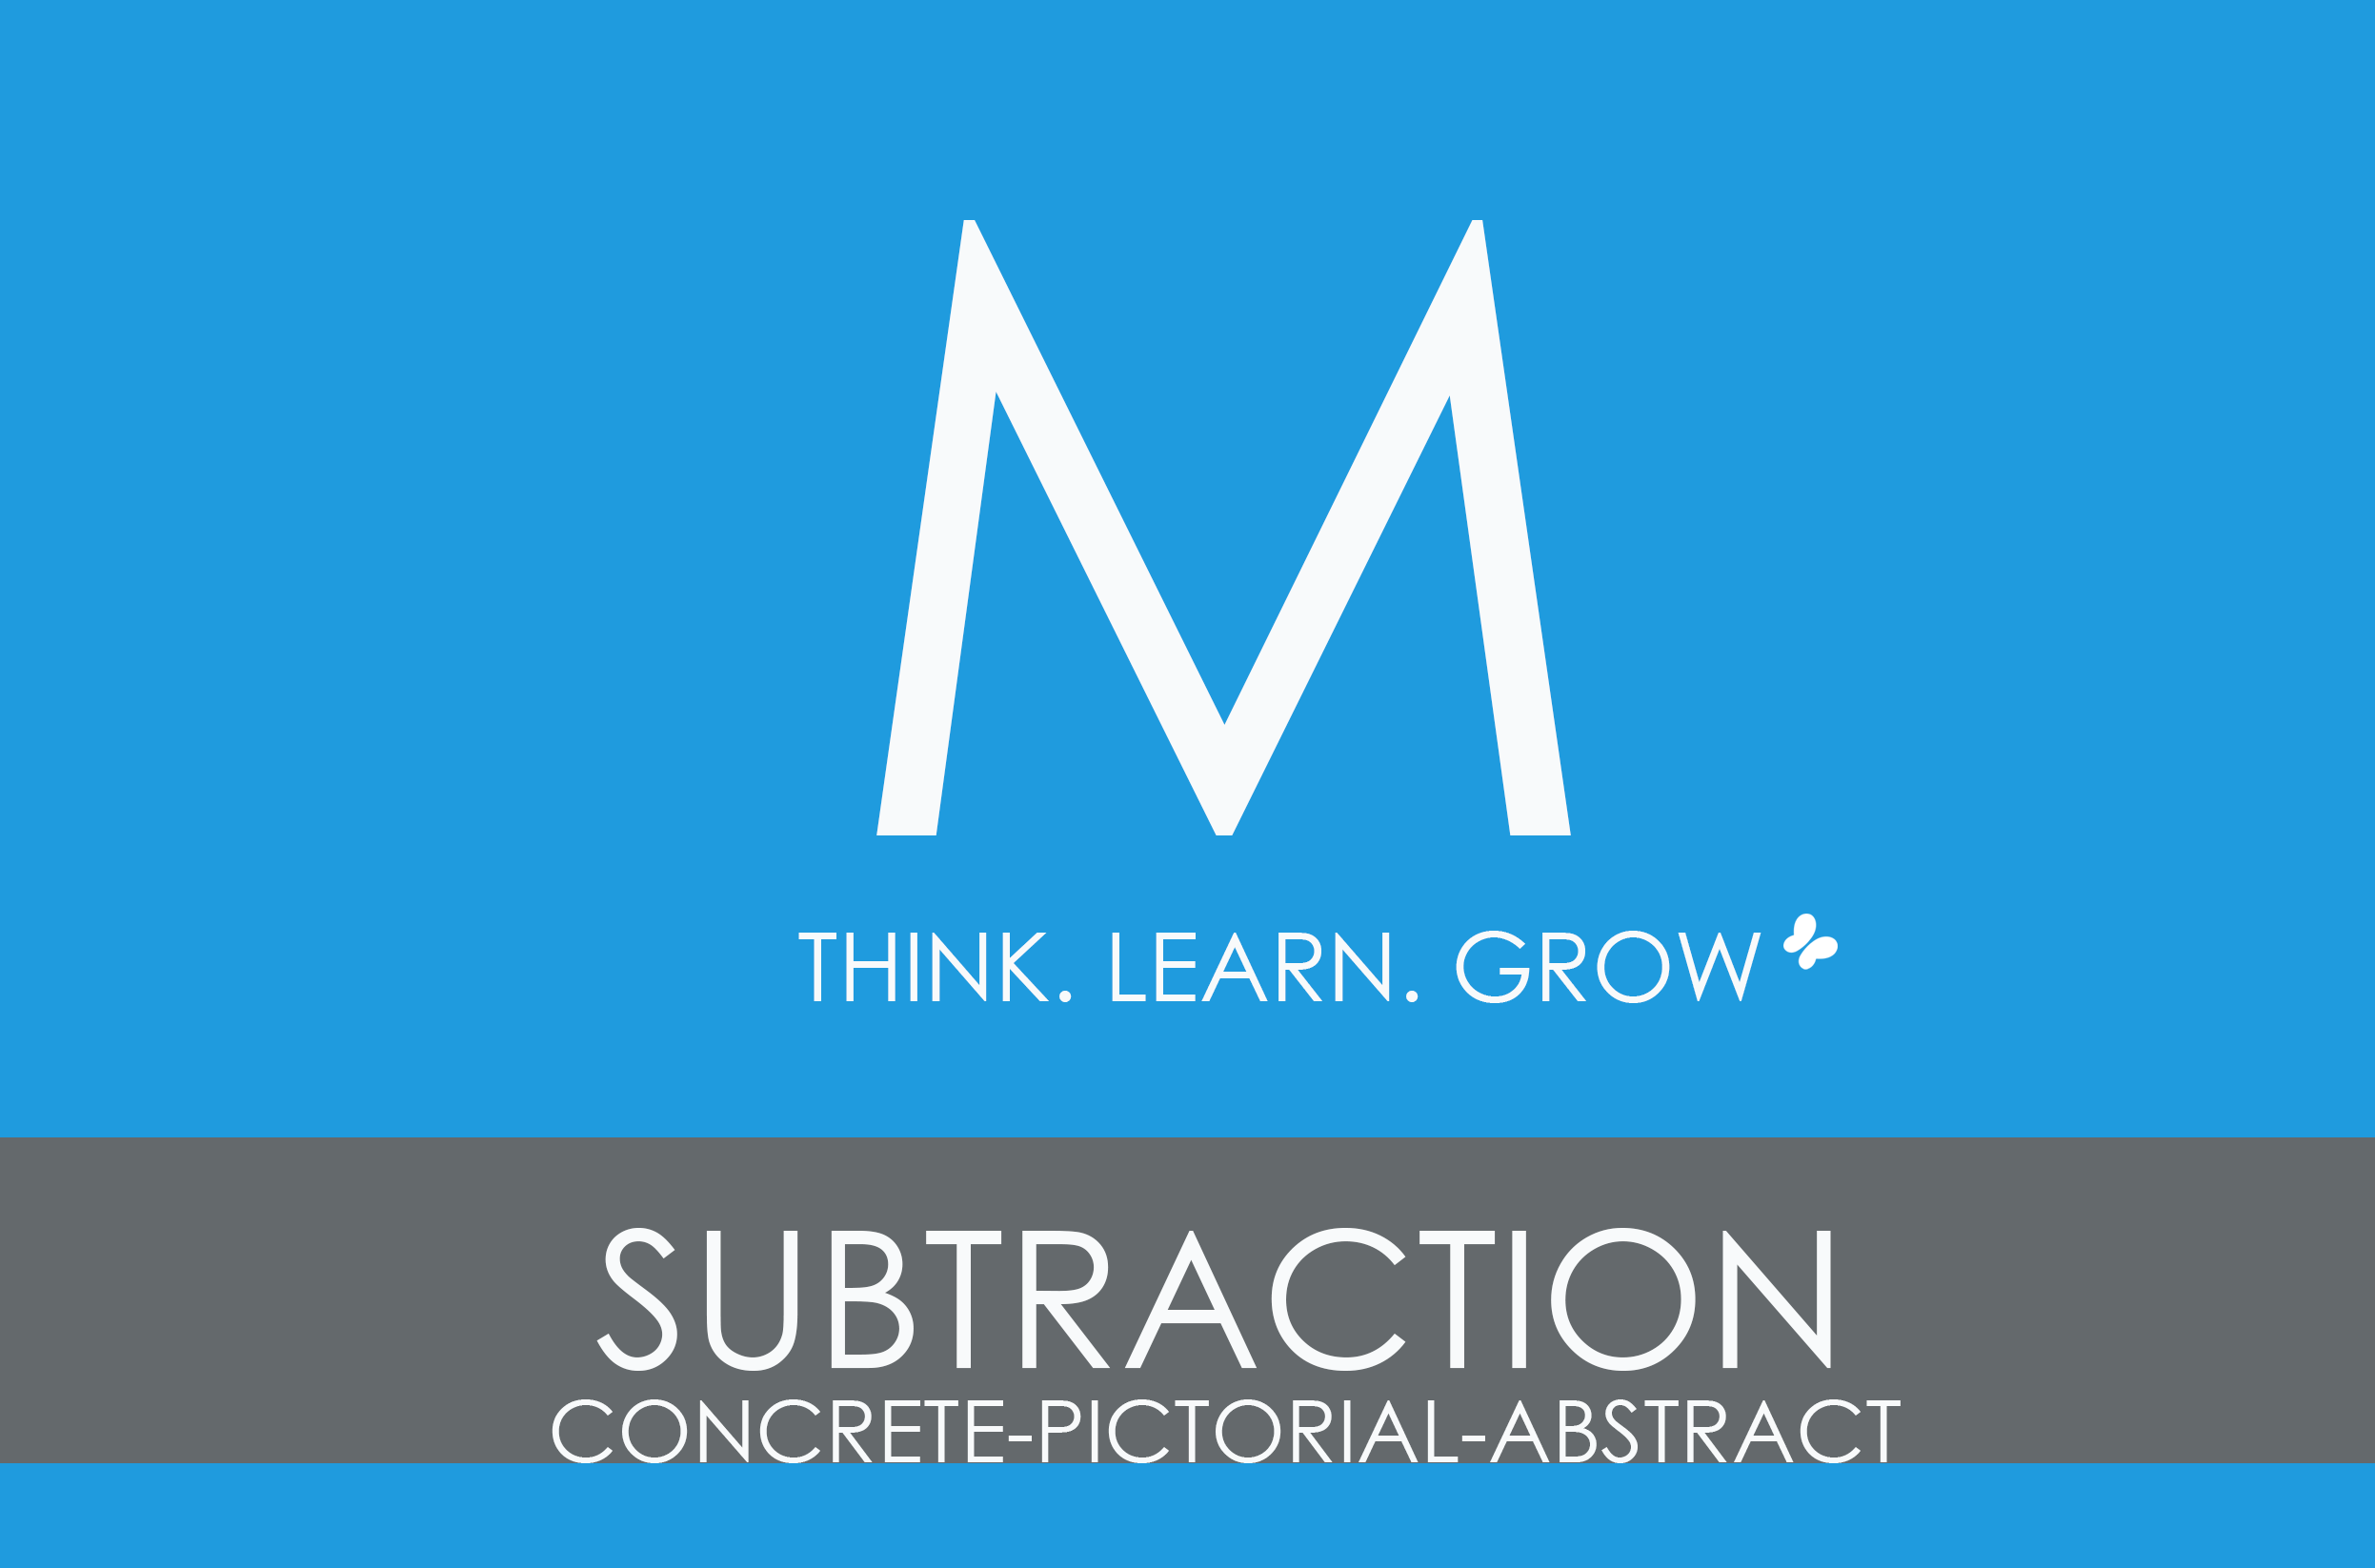 NBT2317_Subtraction_Algorithm_Renaming_Concrete_Pictorial_Abstract